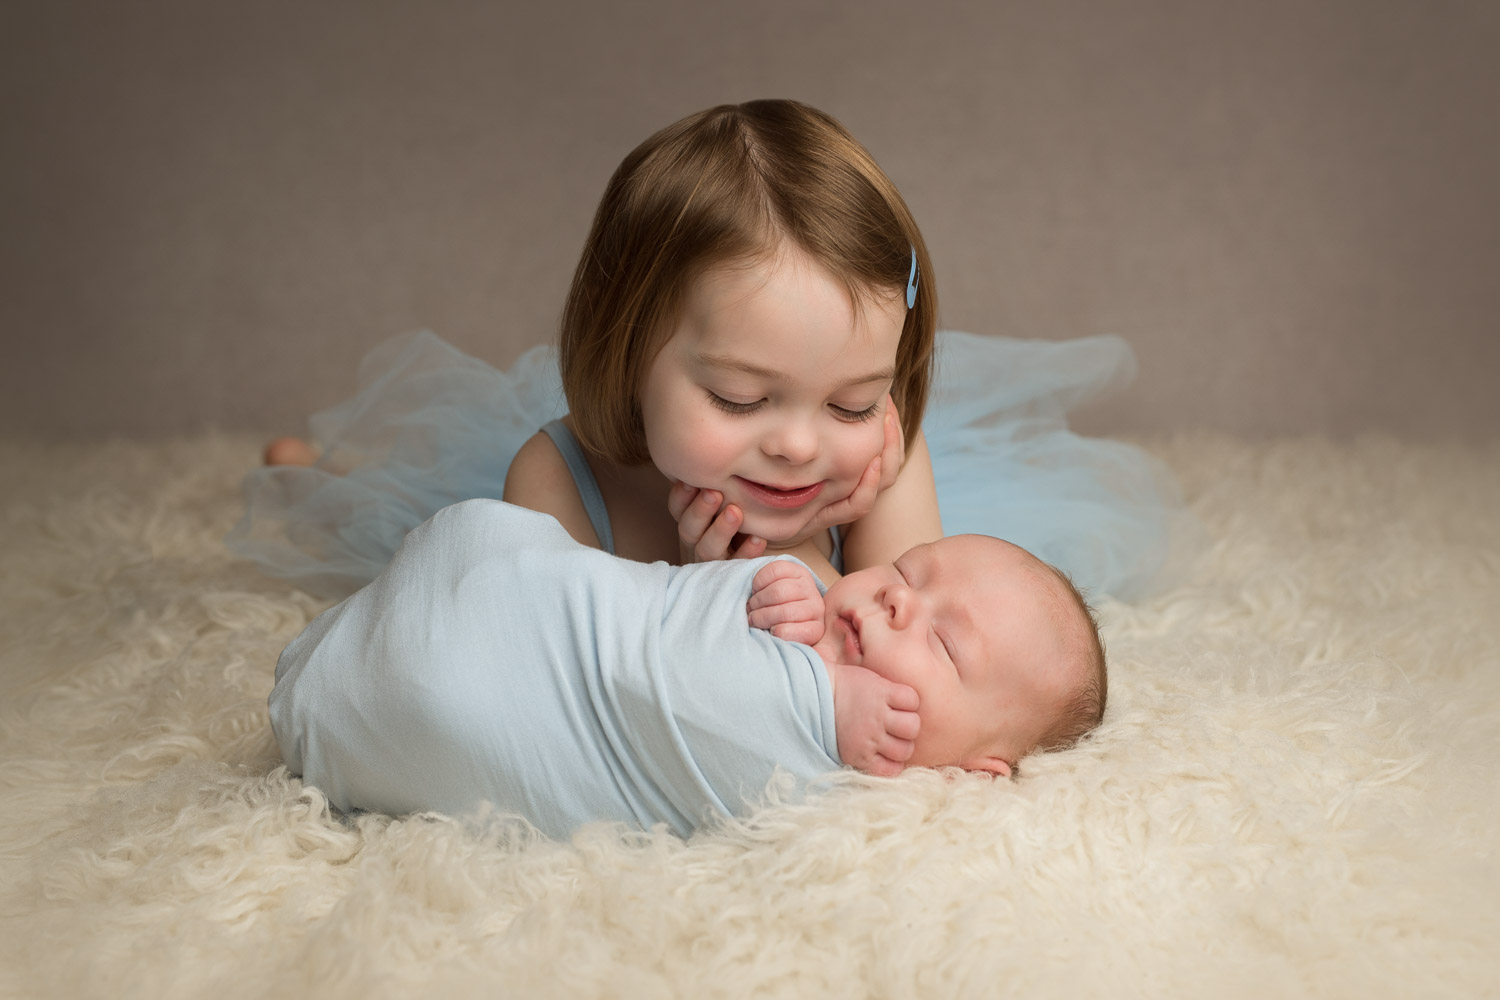 newborn baby and sister by siobhan kelly photography